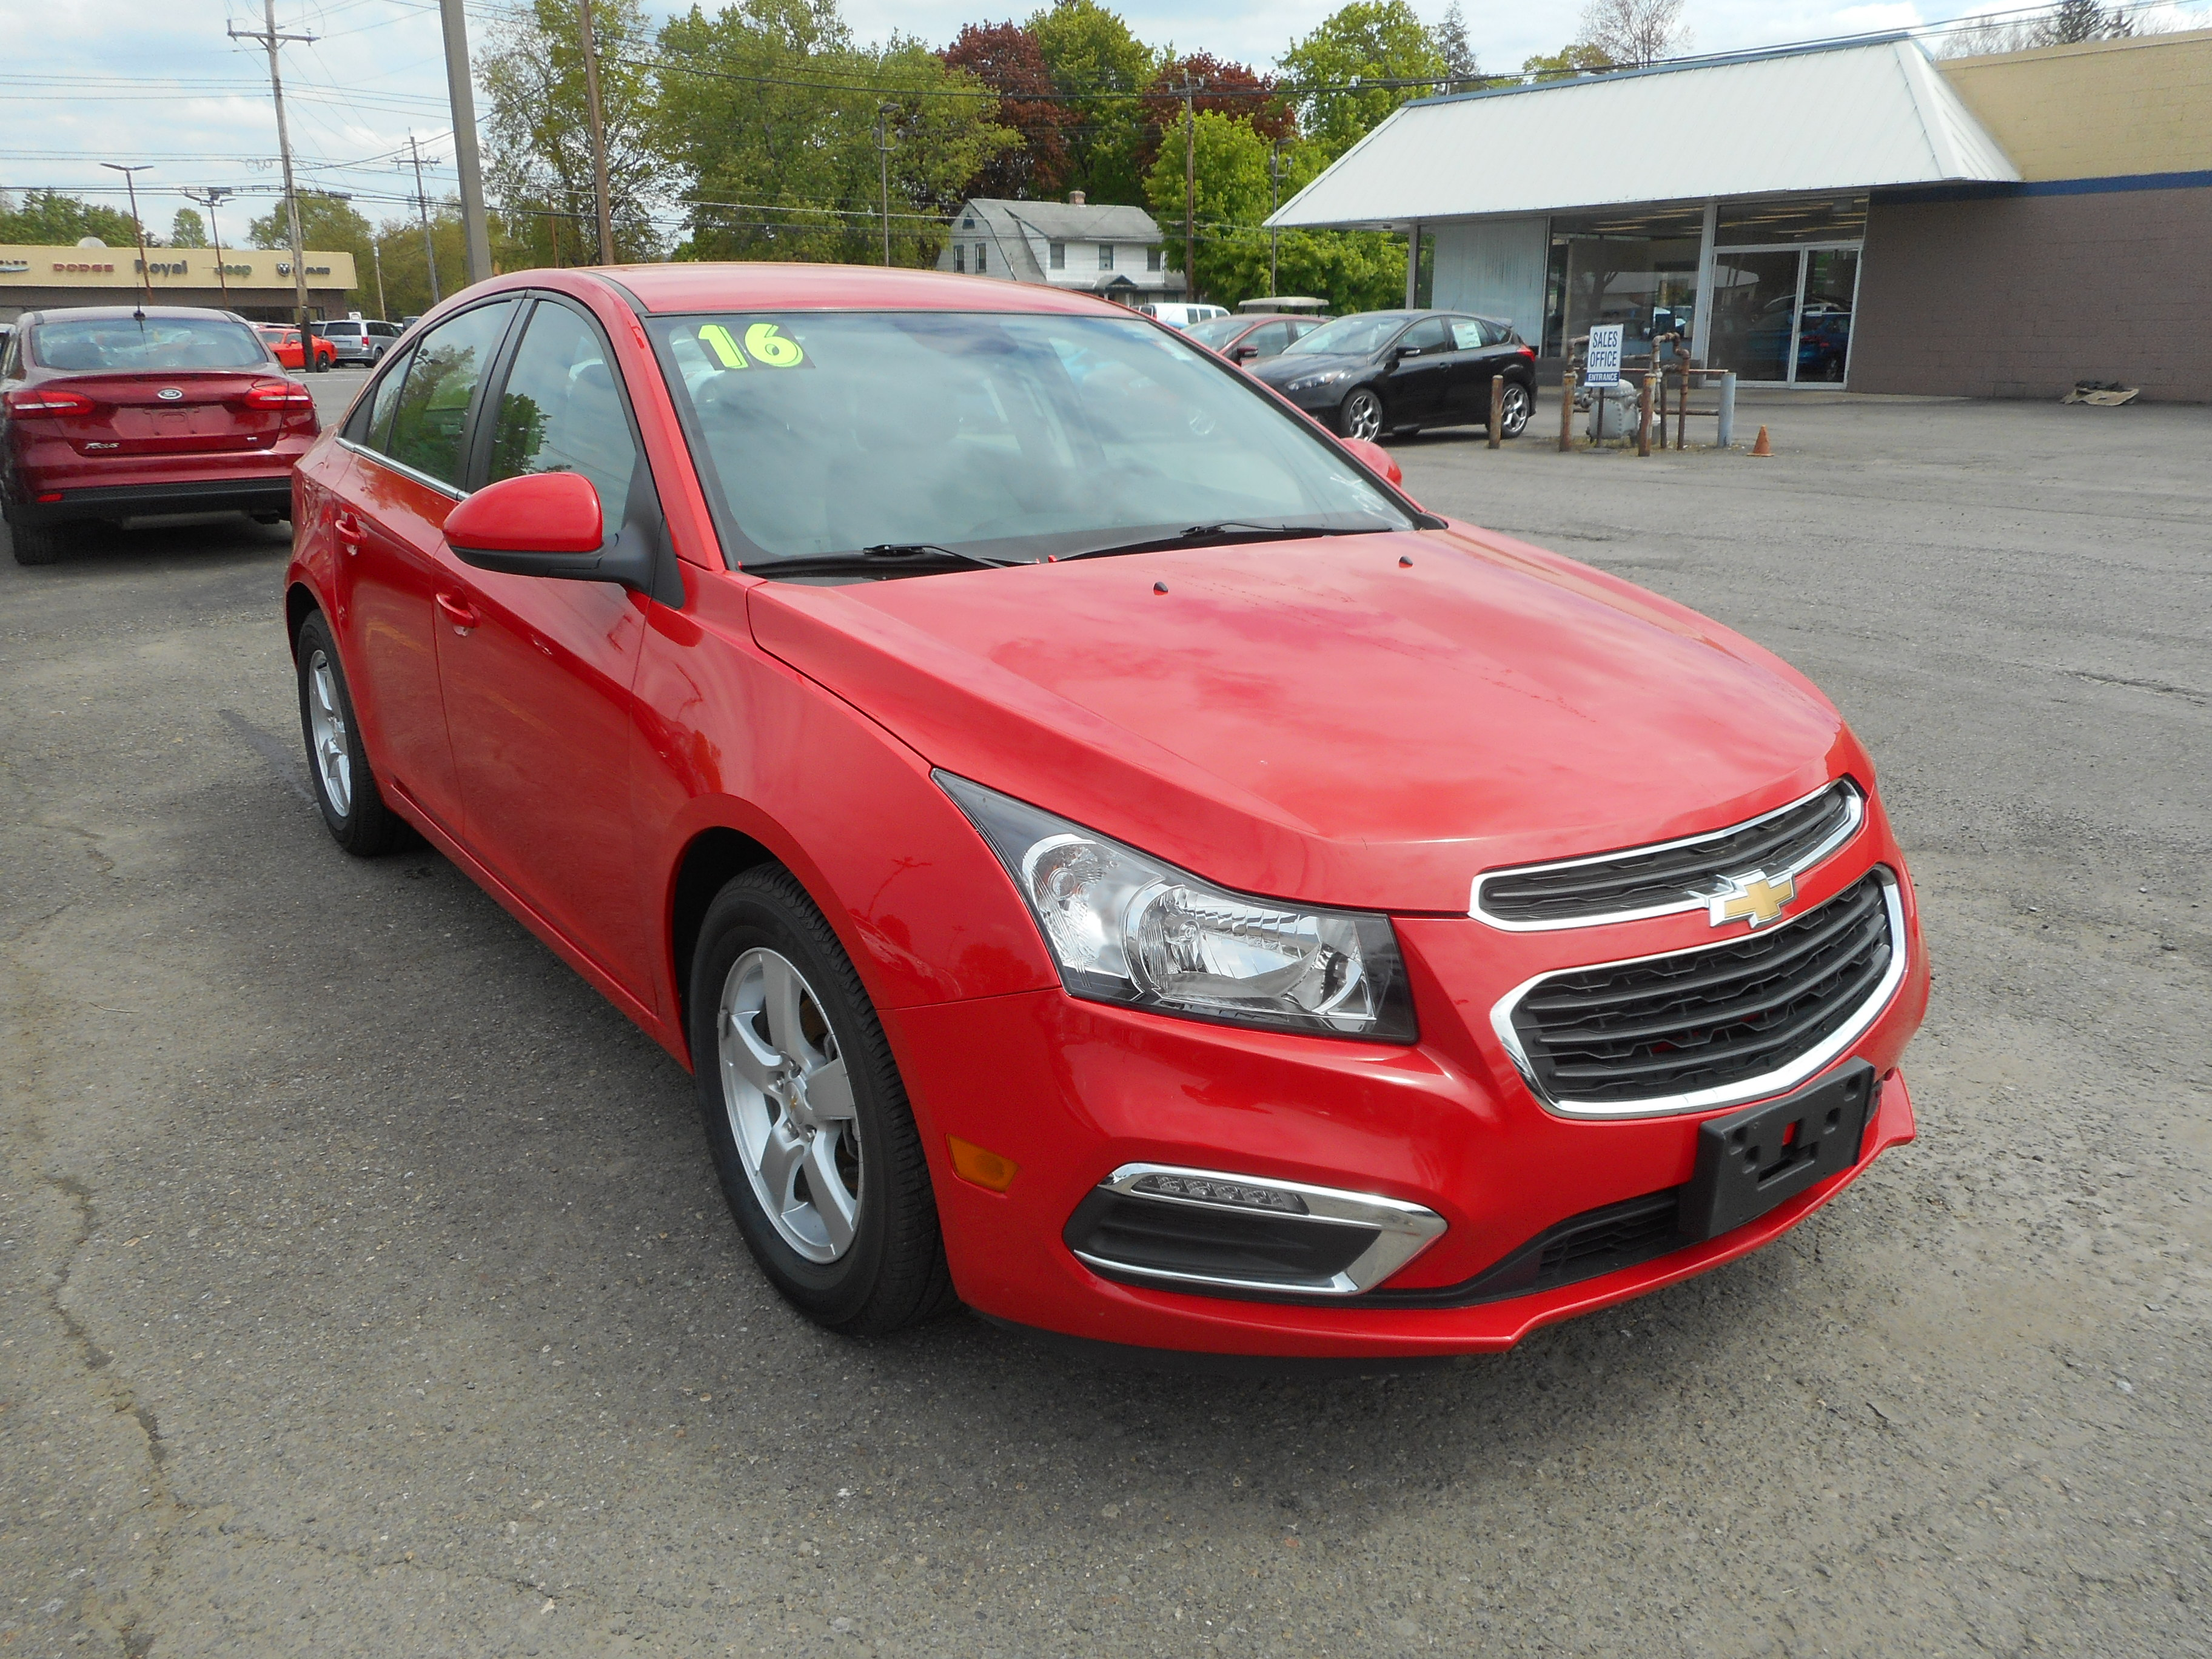 used car specials coupons 2016 chevrolet cruze limited lt kevin 39 s royal auto owego ny. Black Bedroom Furniture Sets. Home Design Ideas